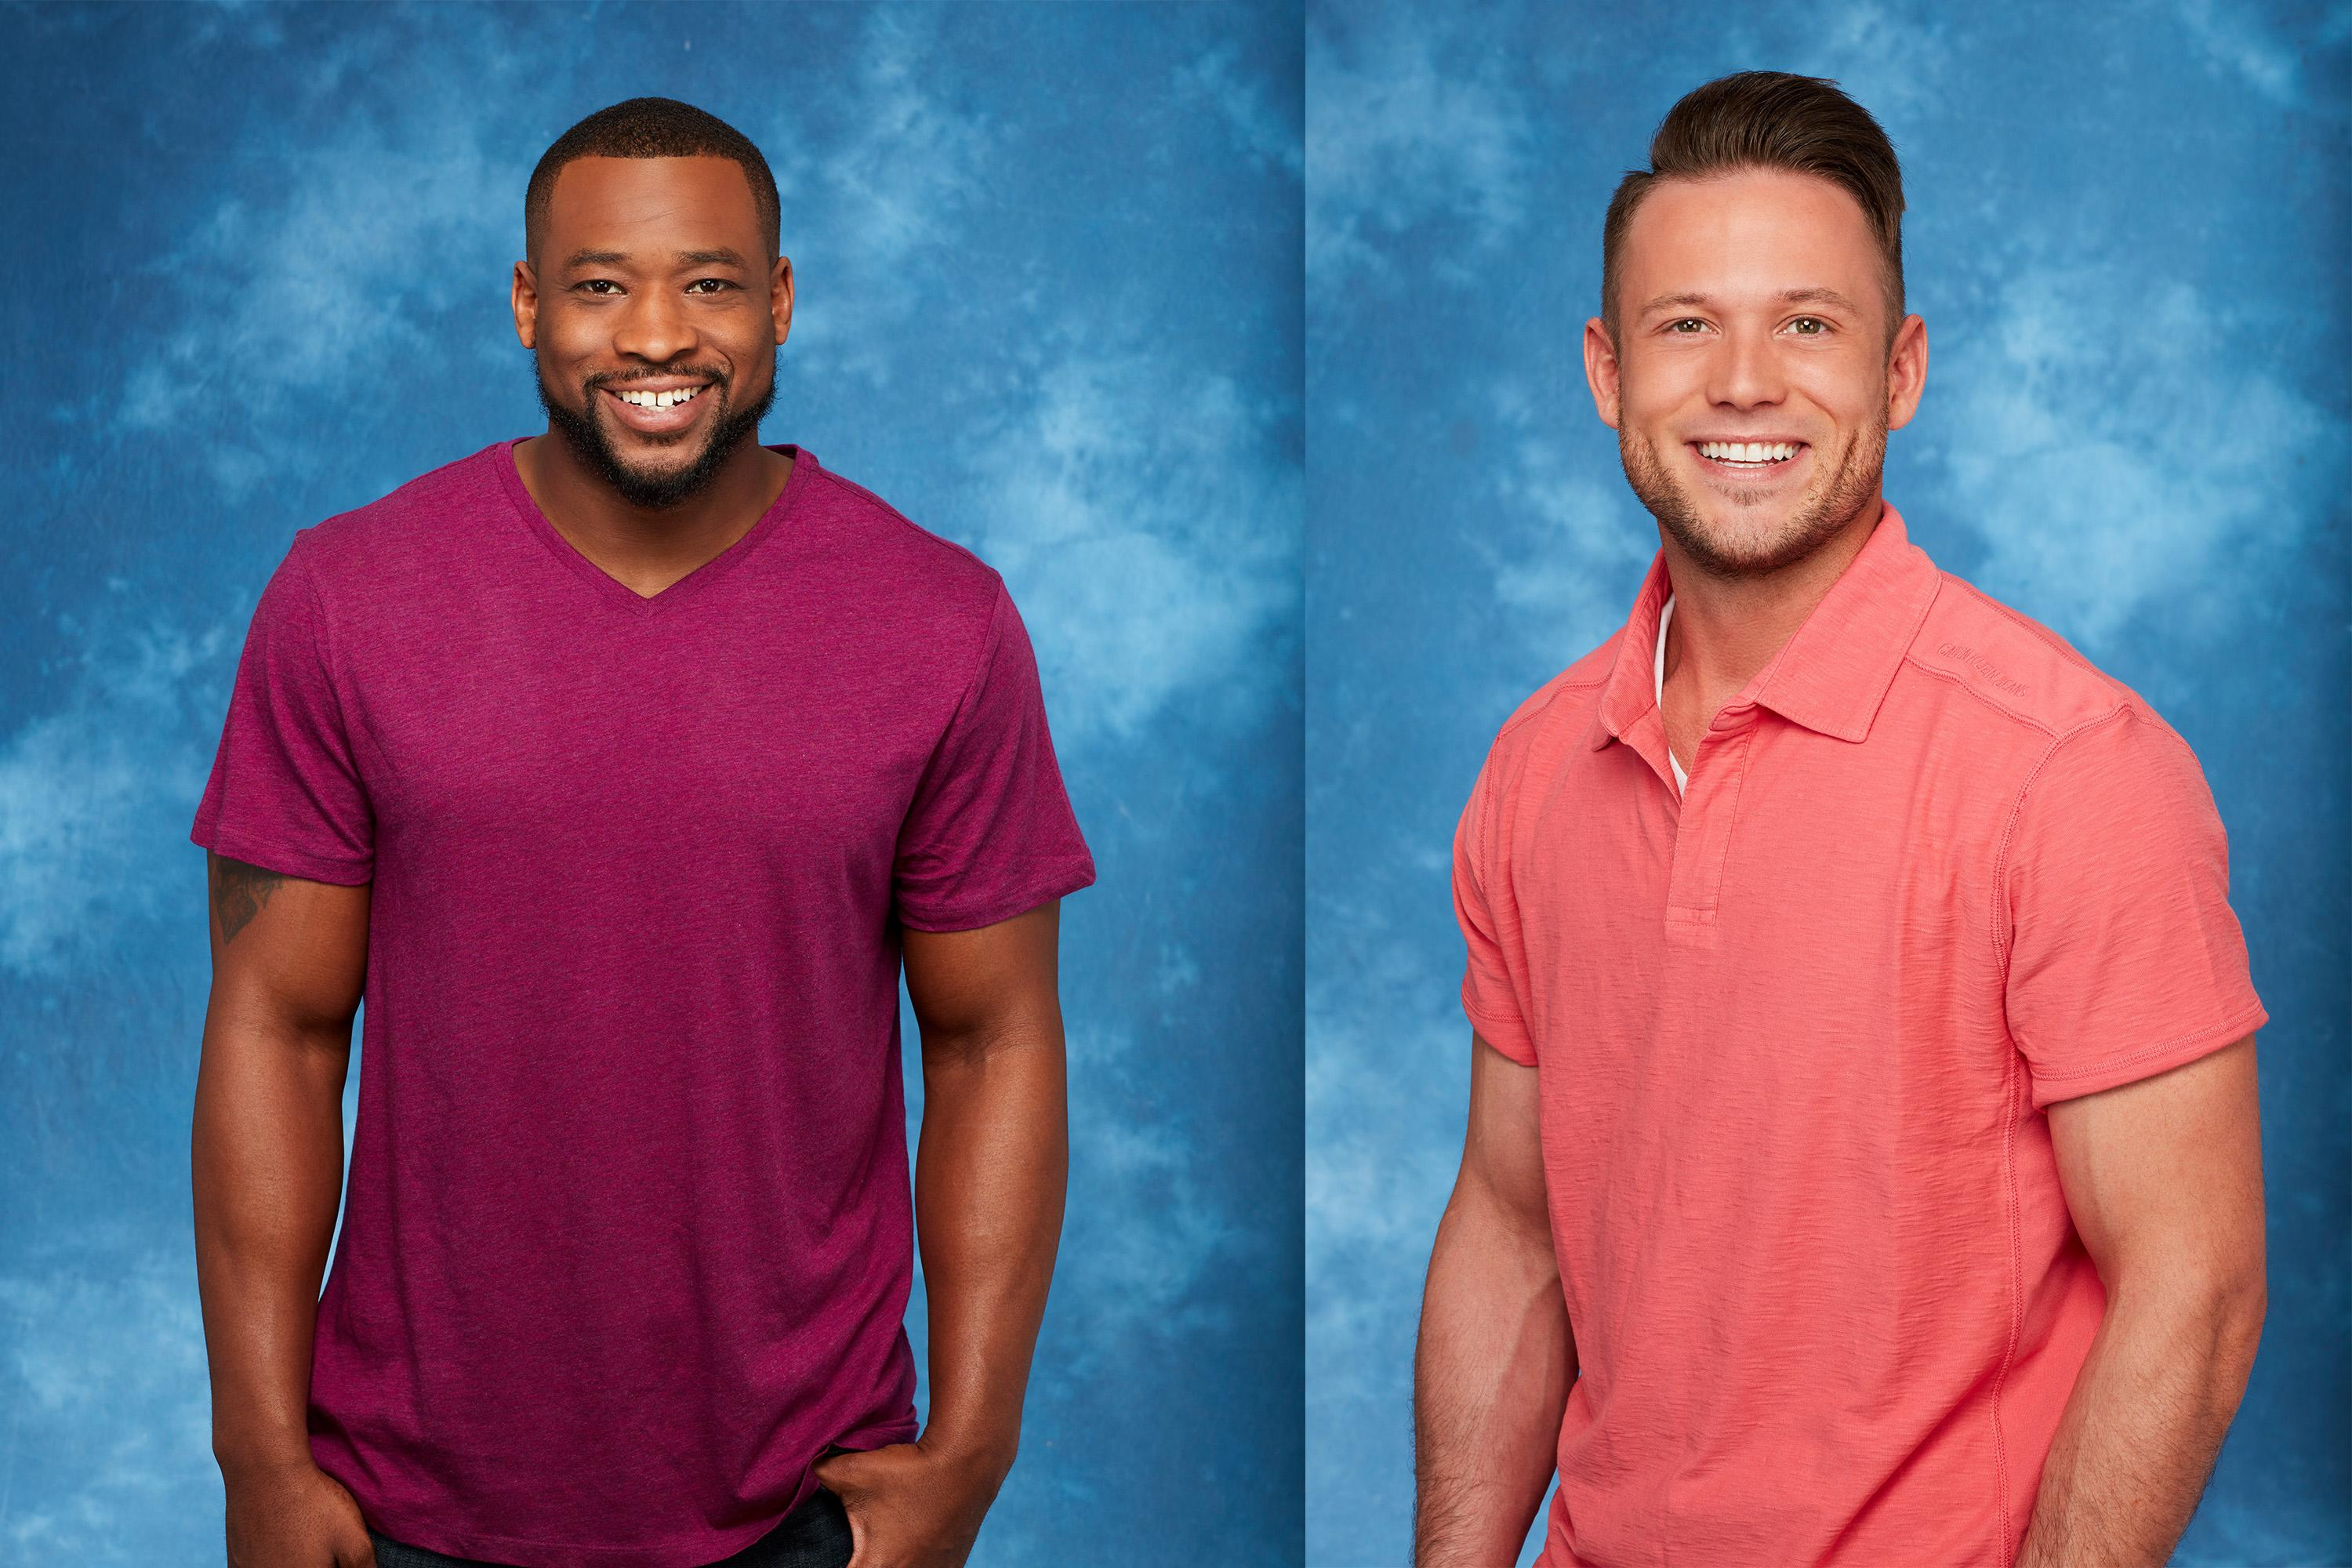 The show formerly known as The Bachelorette should have been renamed this week, The Lee and Kenny Show. (ABC/Craig Sjodin)